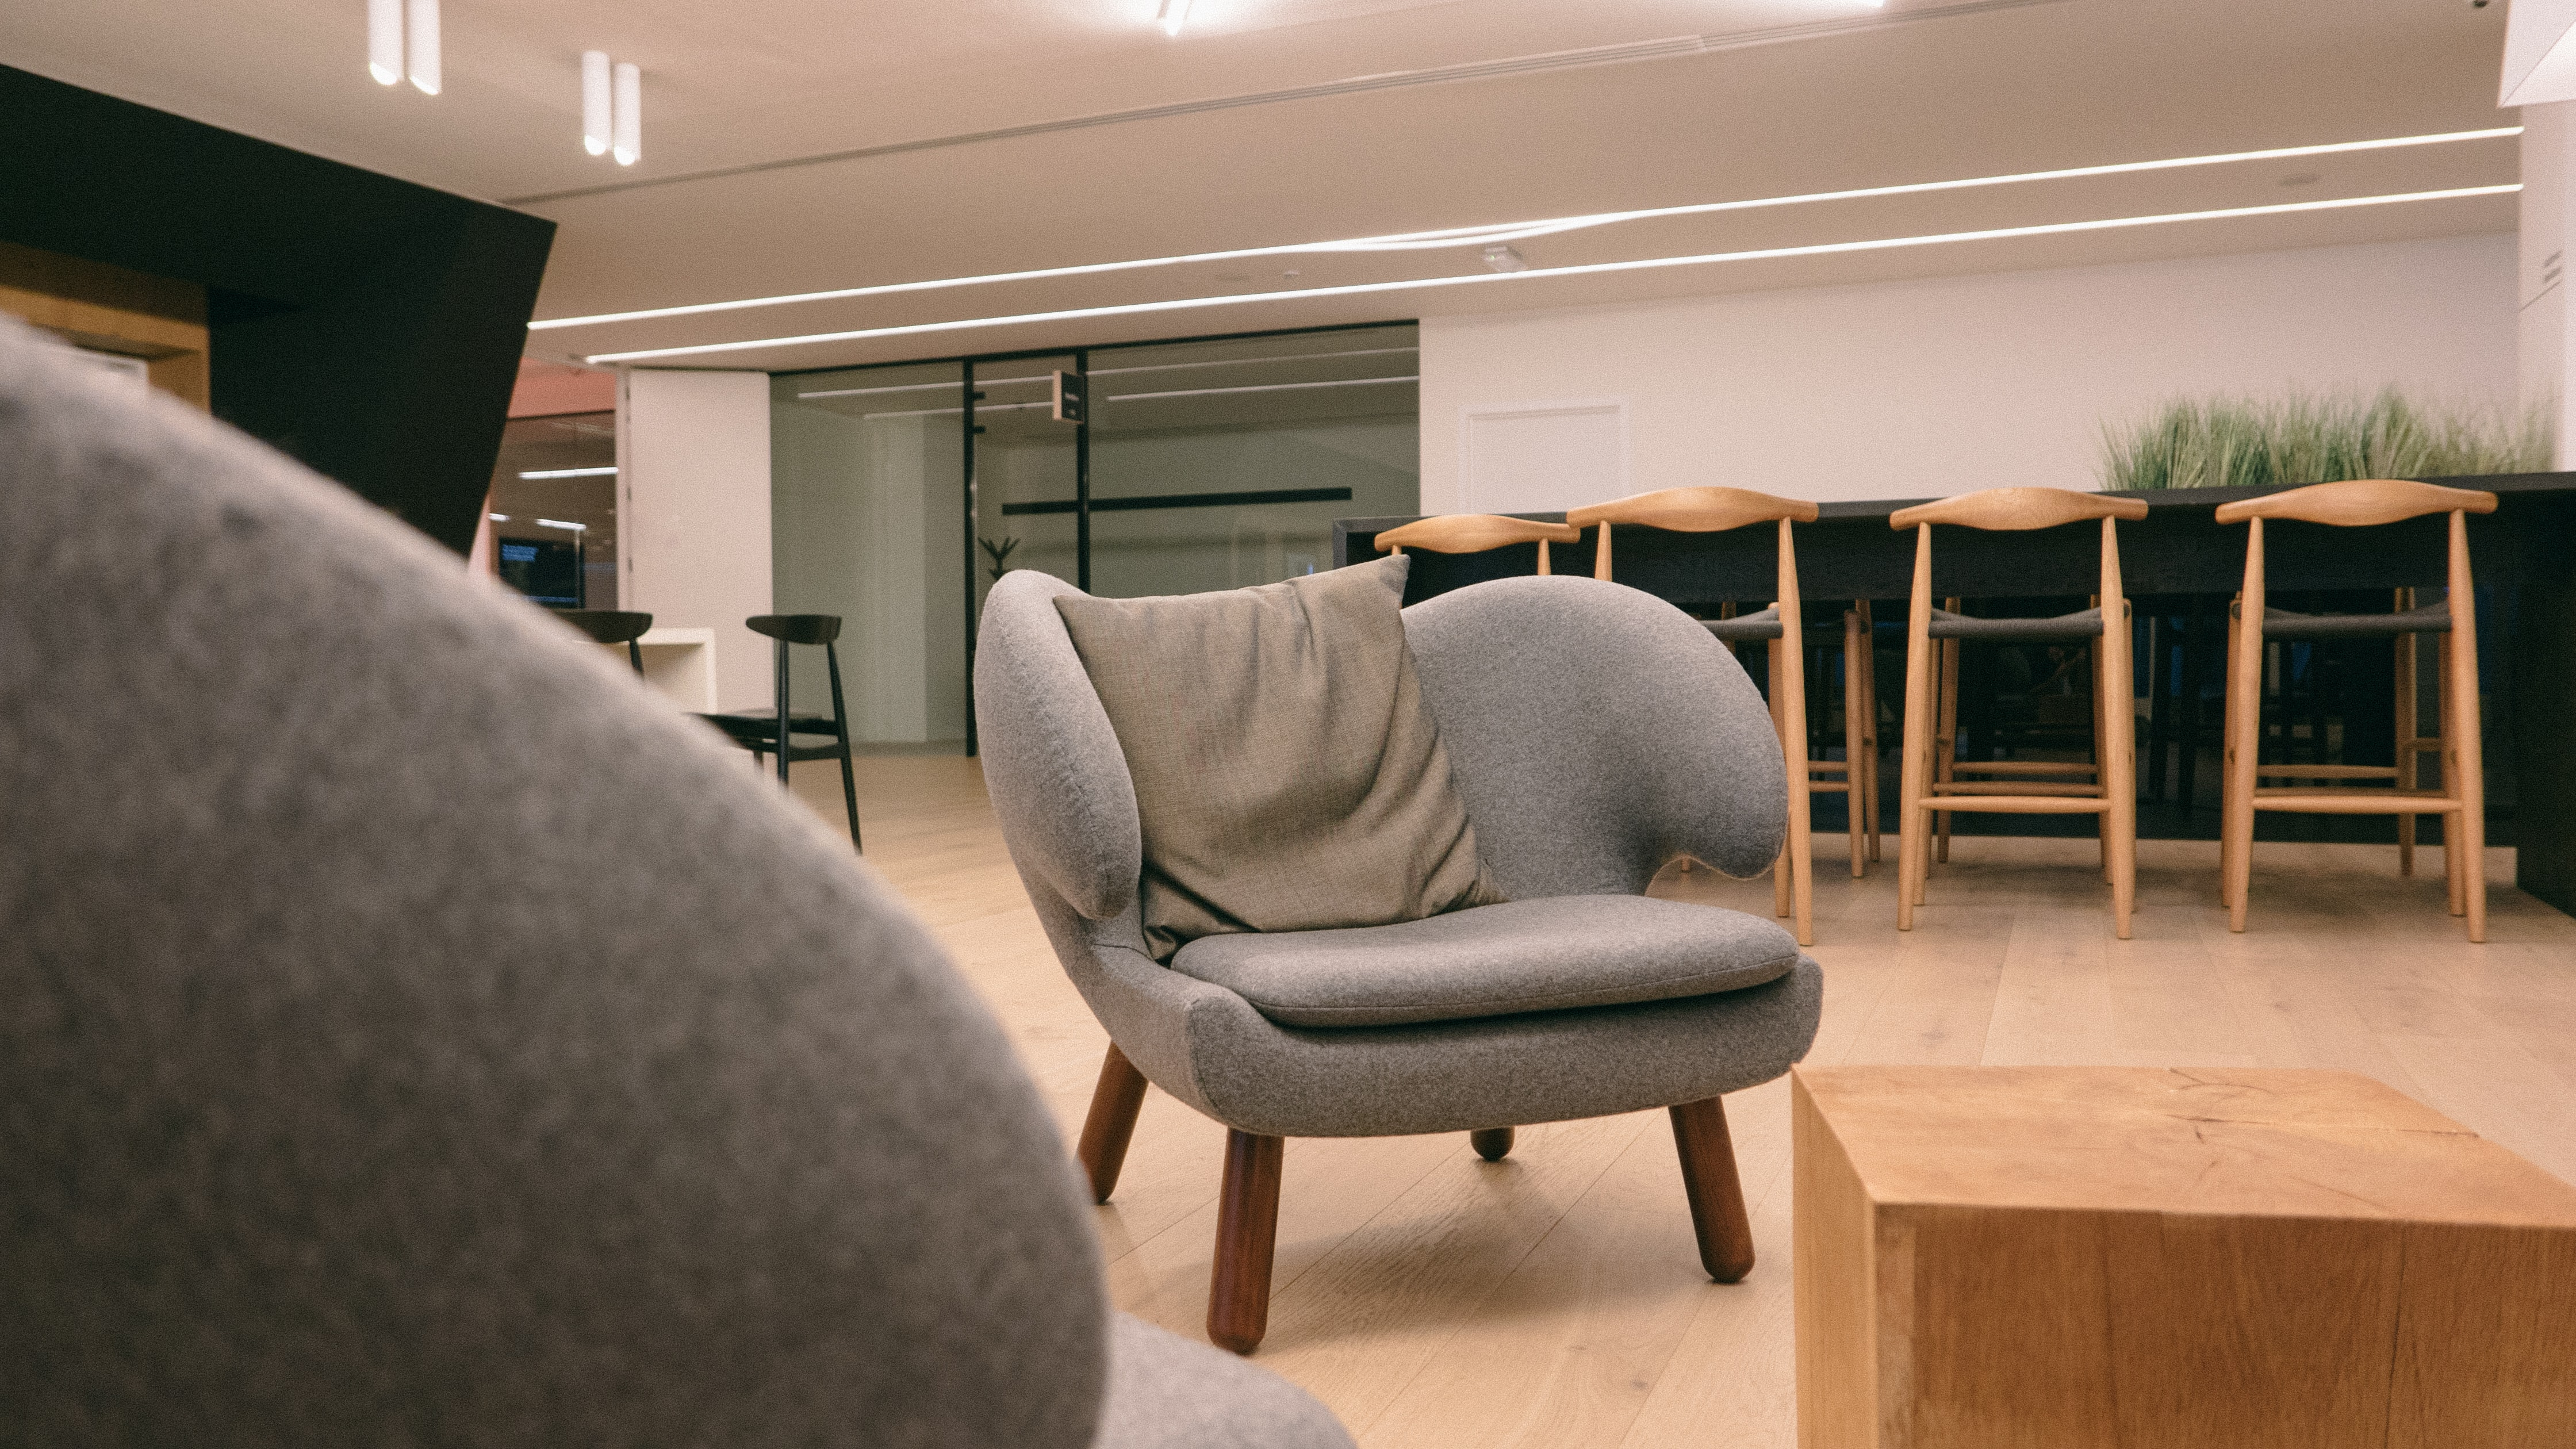 photo of gray fabric padded sofa chair near brown wooden coffee table in room